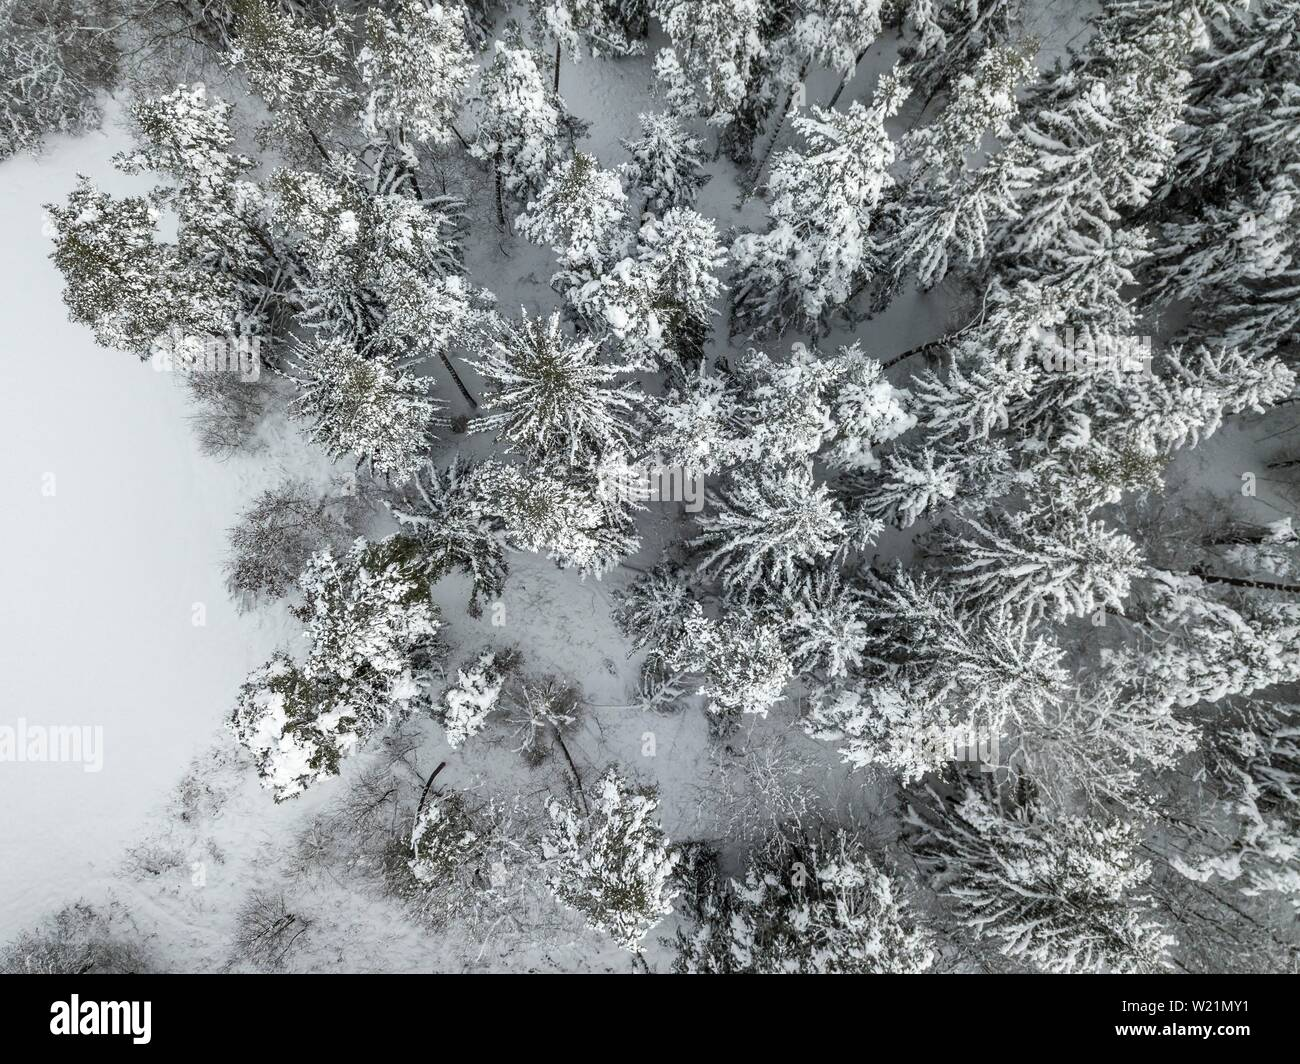 Snow-covered spruce forest from above, bird's eye view, Bavaria, Germany - Stock Image